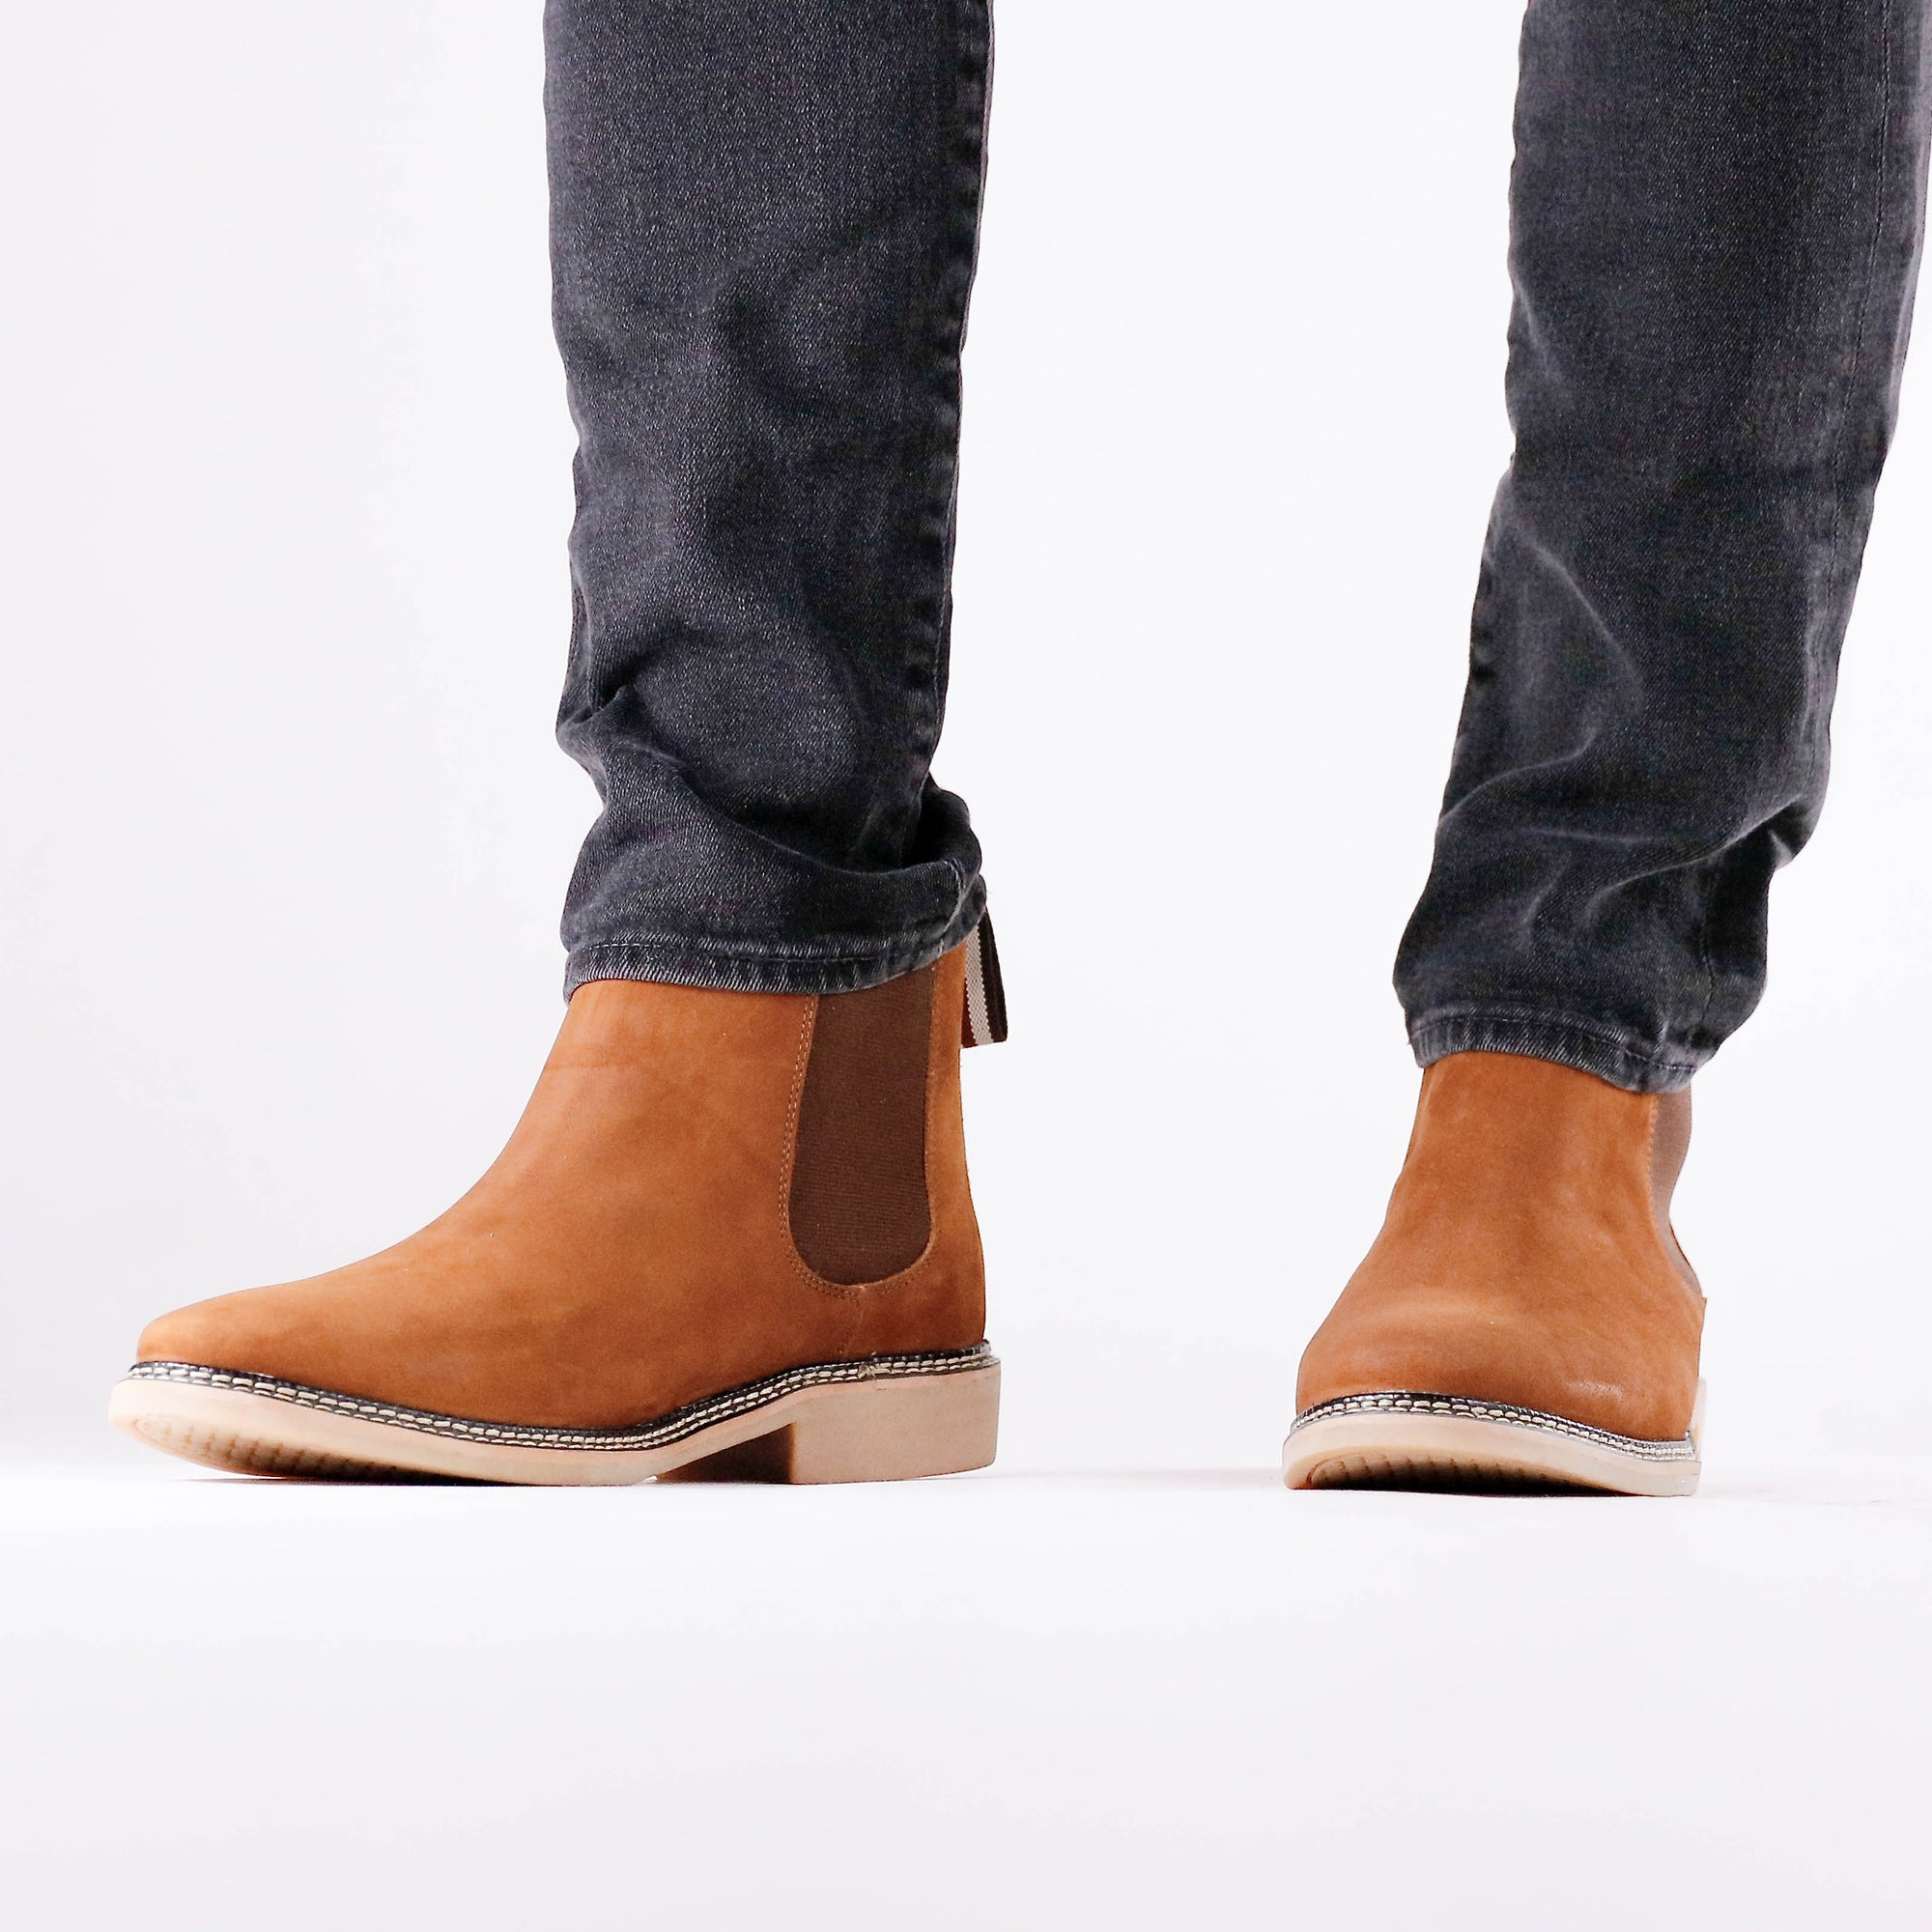 DW Chelsea Boots Men_Rust 2_boots men, leather chelsea boots men, leather boots, boots men, brown chelsea boots, de wulf men shoes, de wulf men boots